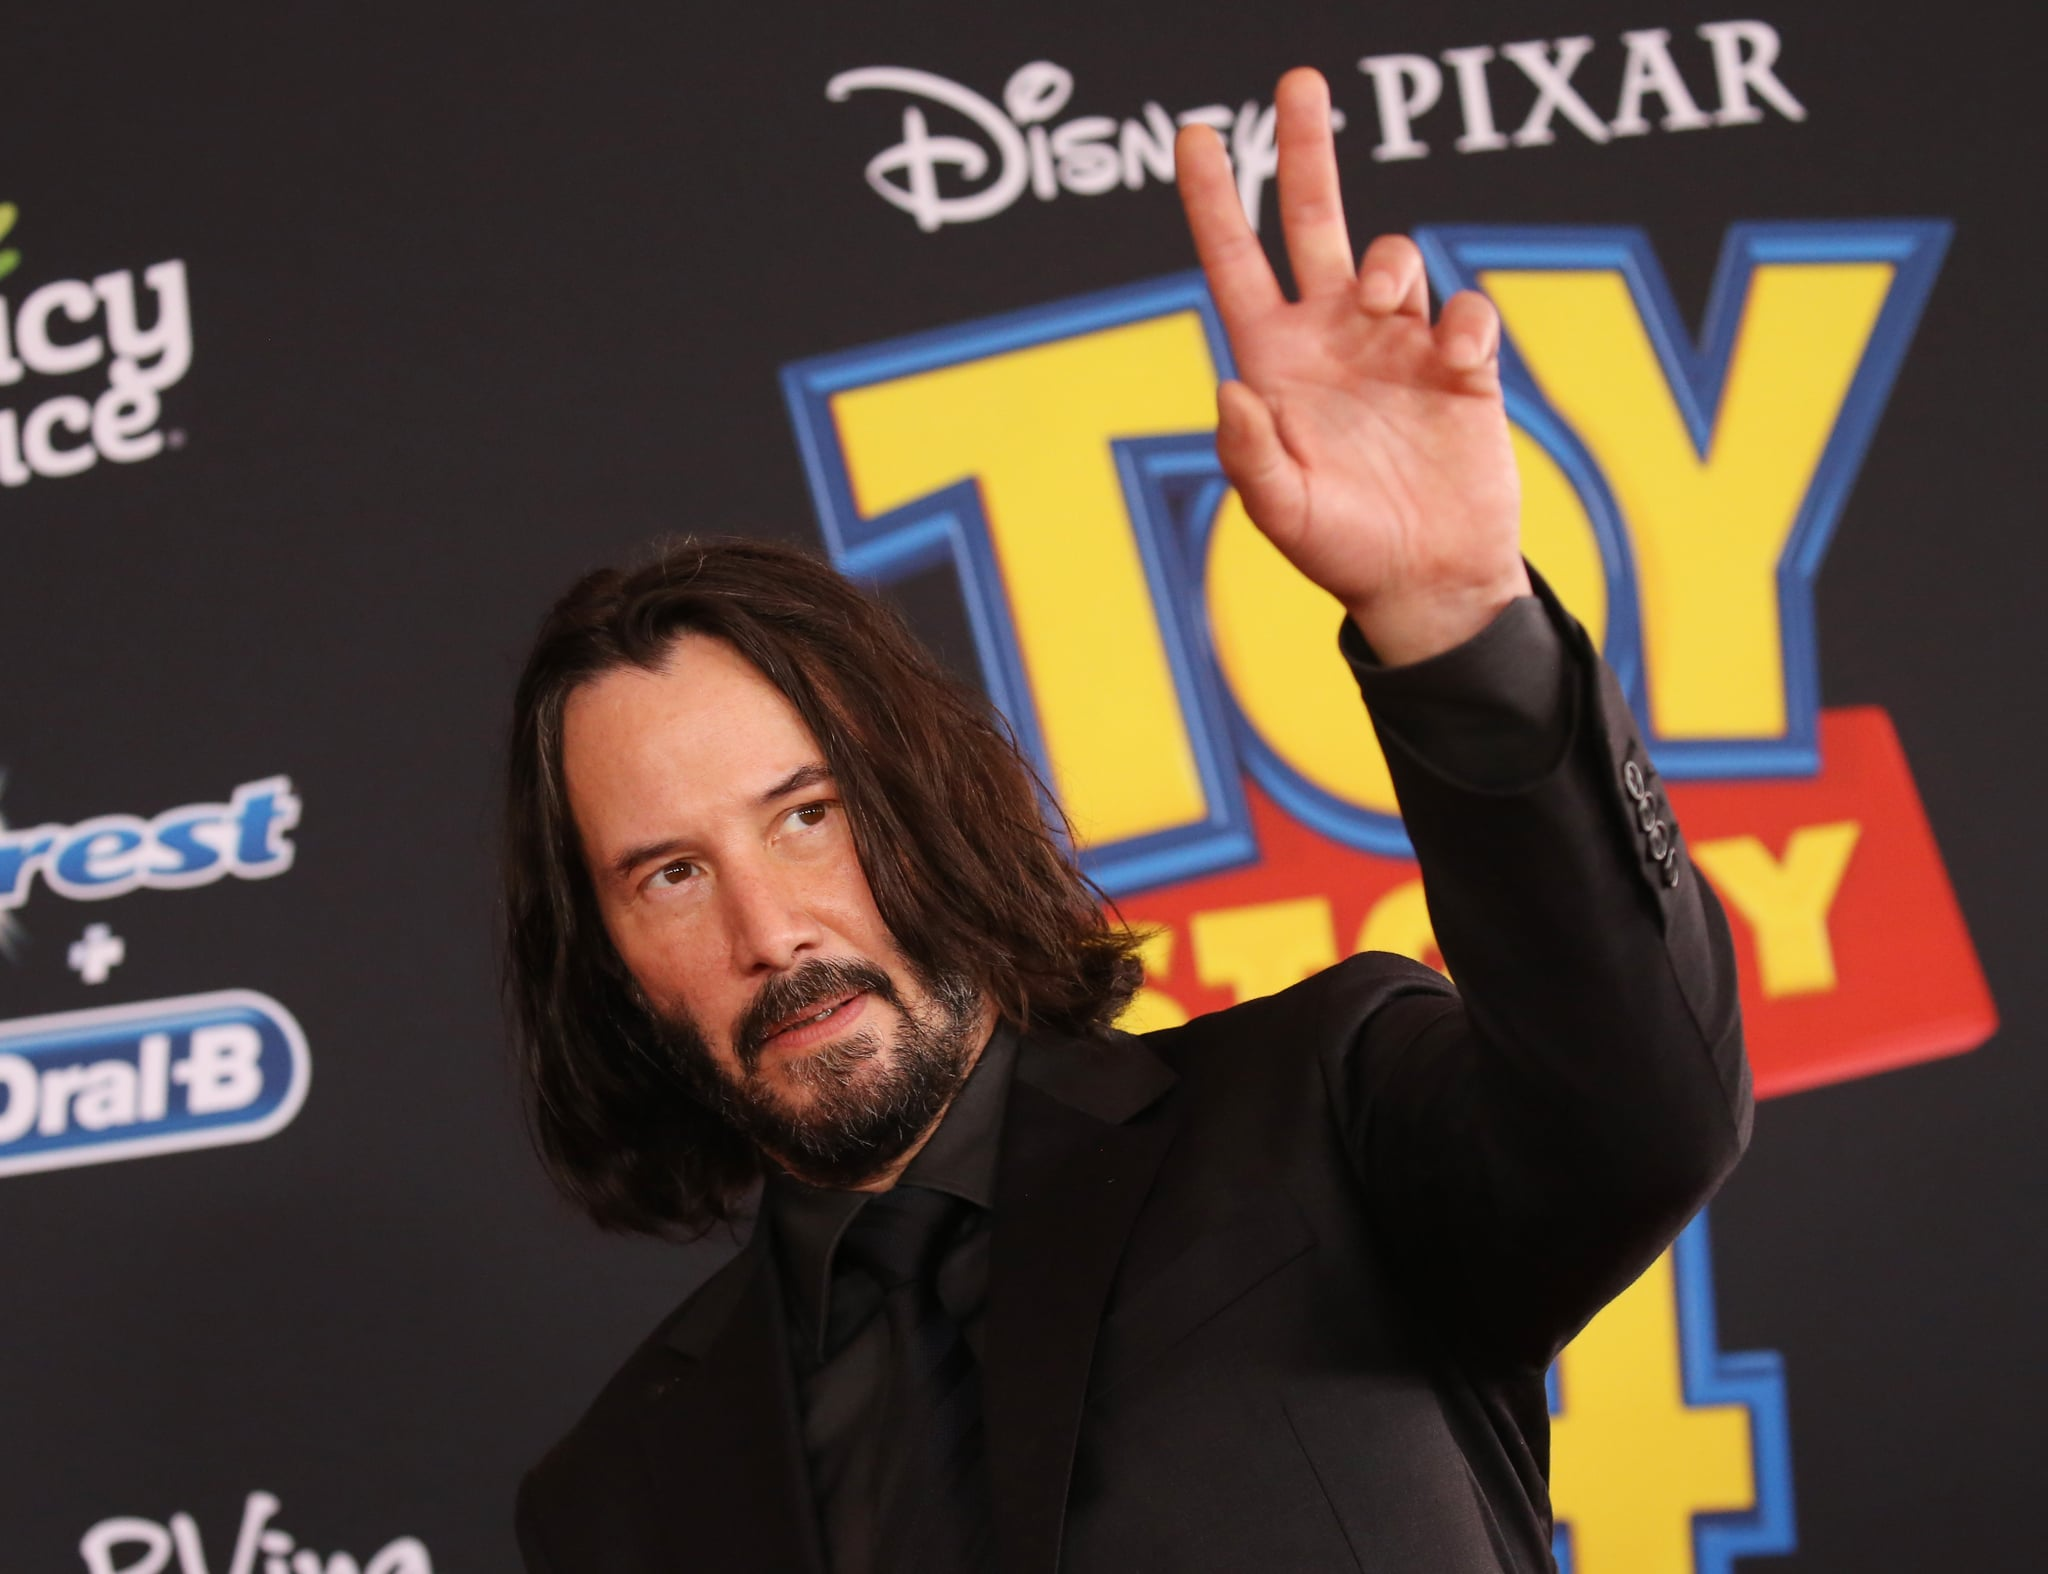 LOS ANGELES, CALIFORNIA - JUNE 11: Keanu Reeves arrives to the Los Angeles premiere of Disney and Pixar's